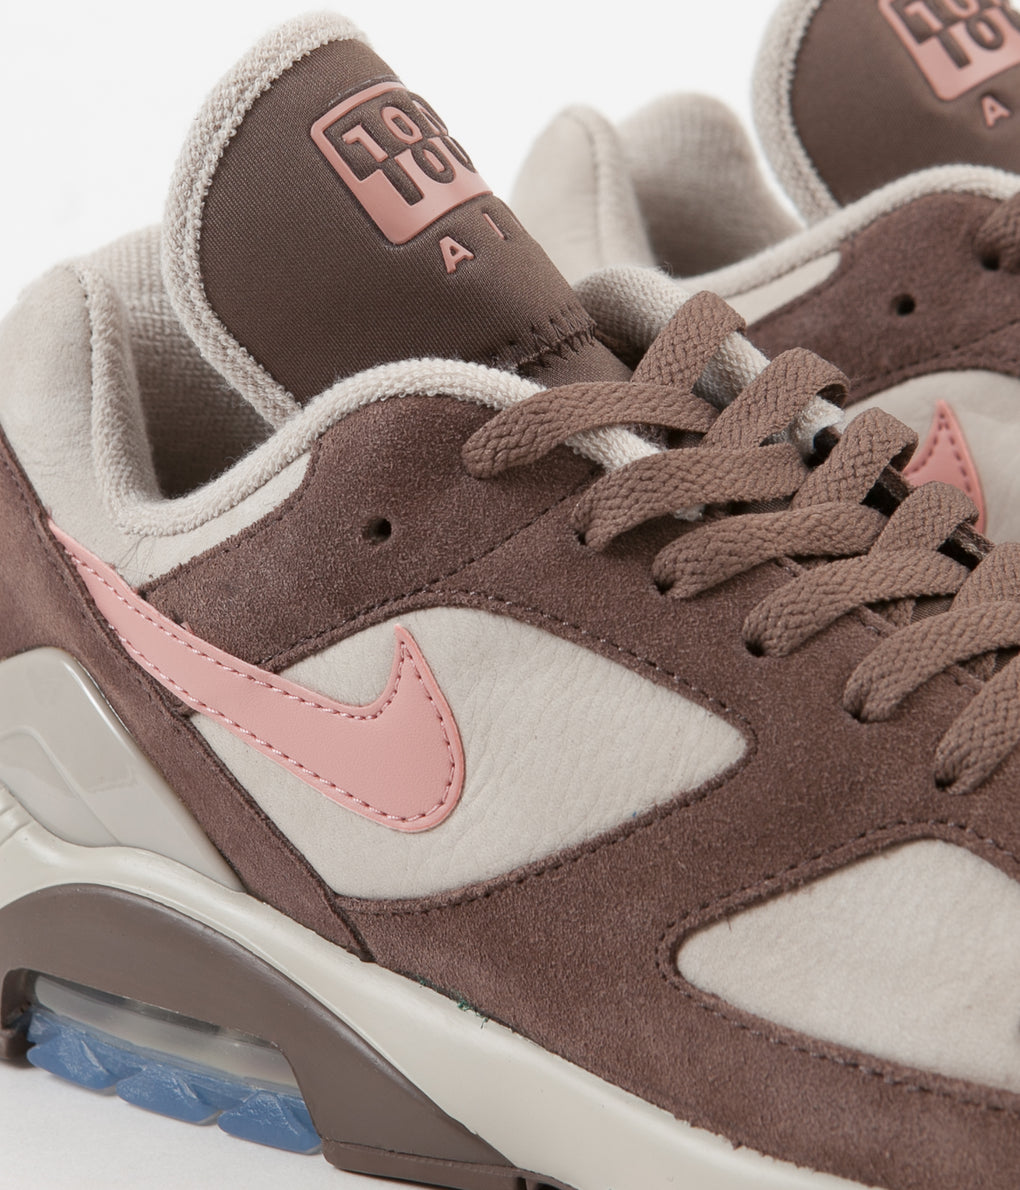 Nike Air Max 180 Shoes - String / Rust Pink - Baroque Brown